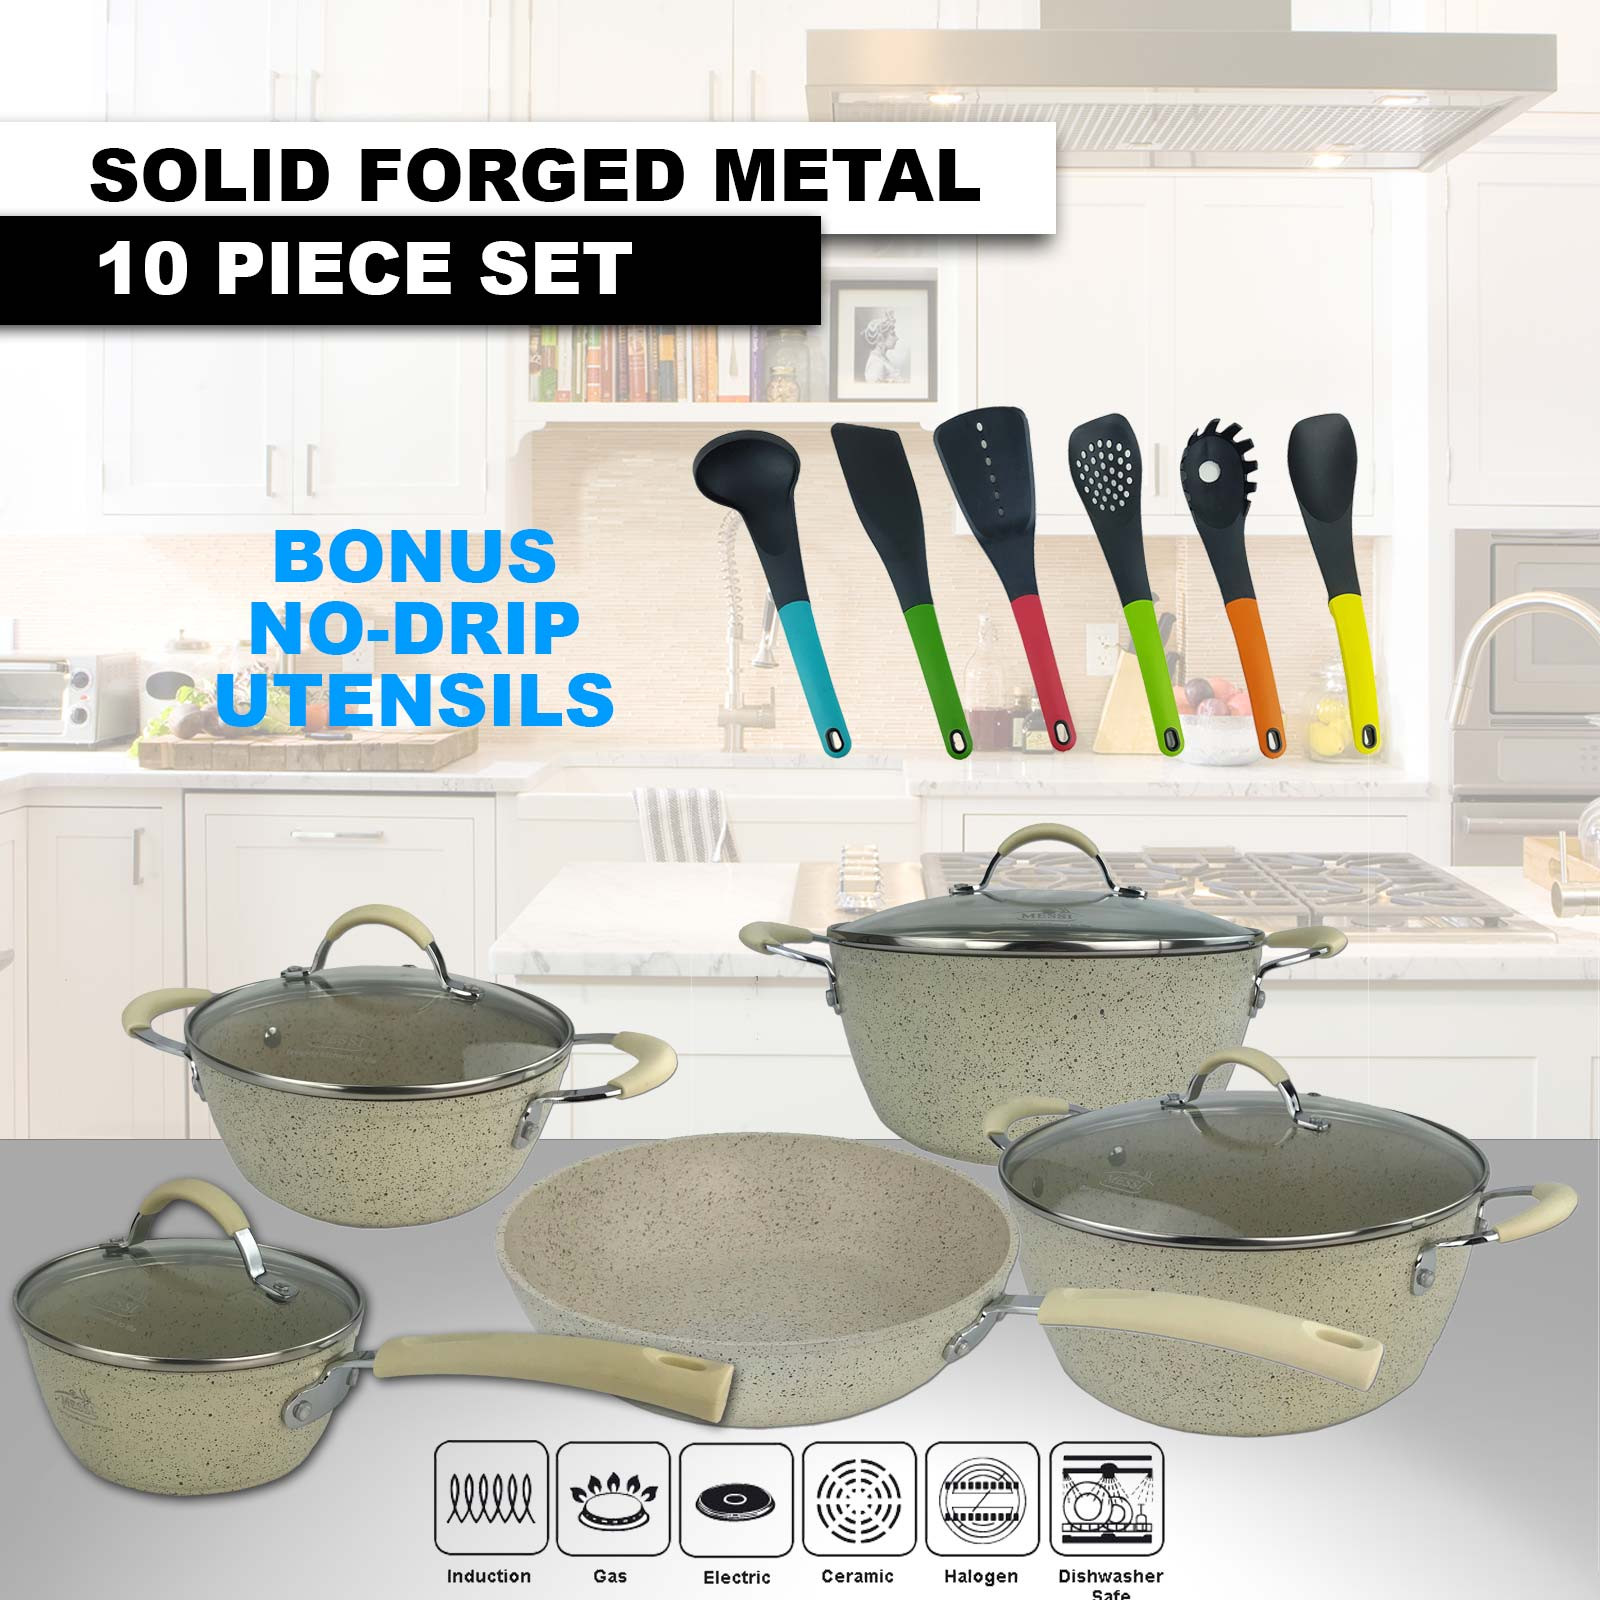 Messi 10 Piece Forged Metal Cookware Set